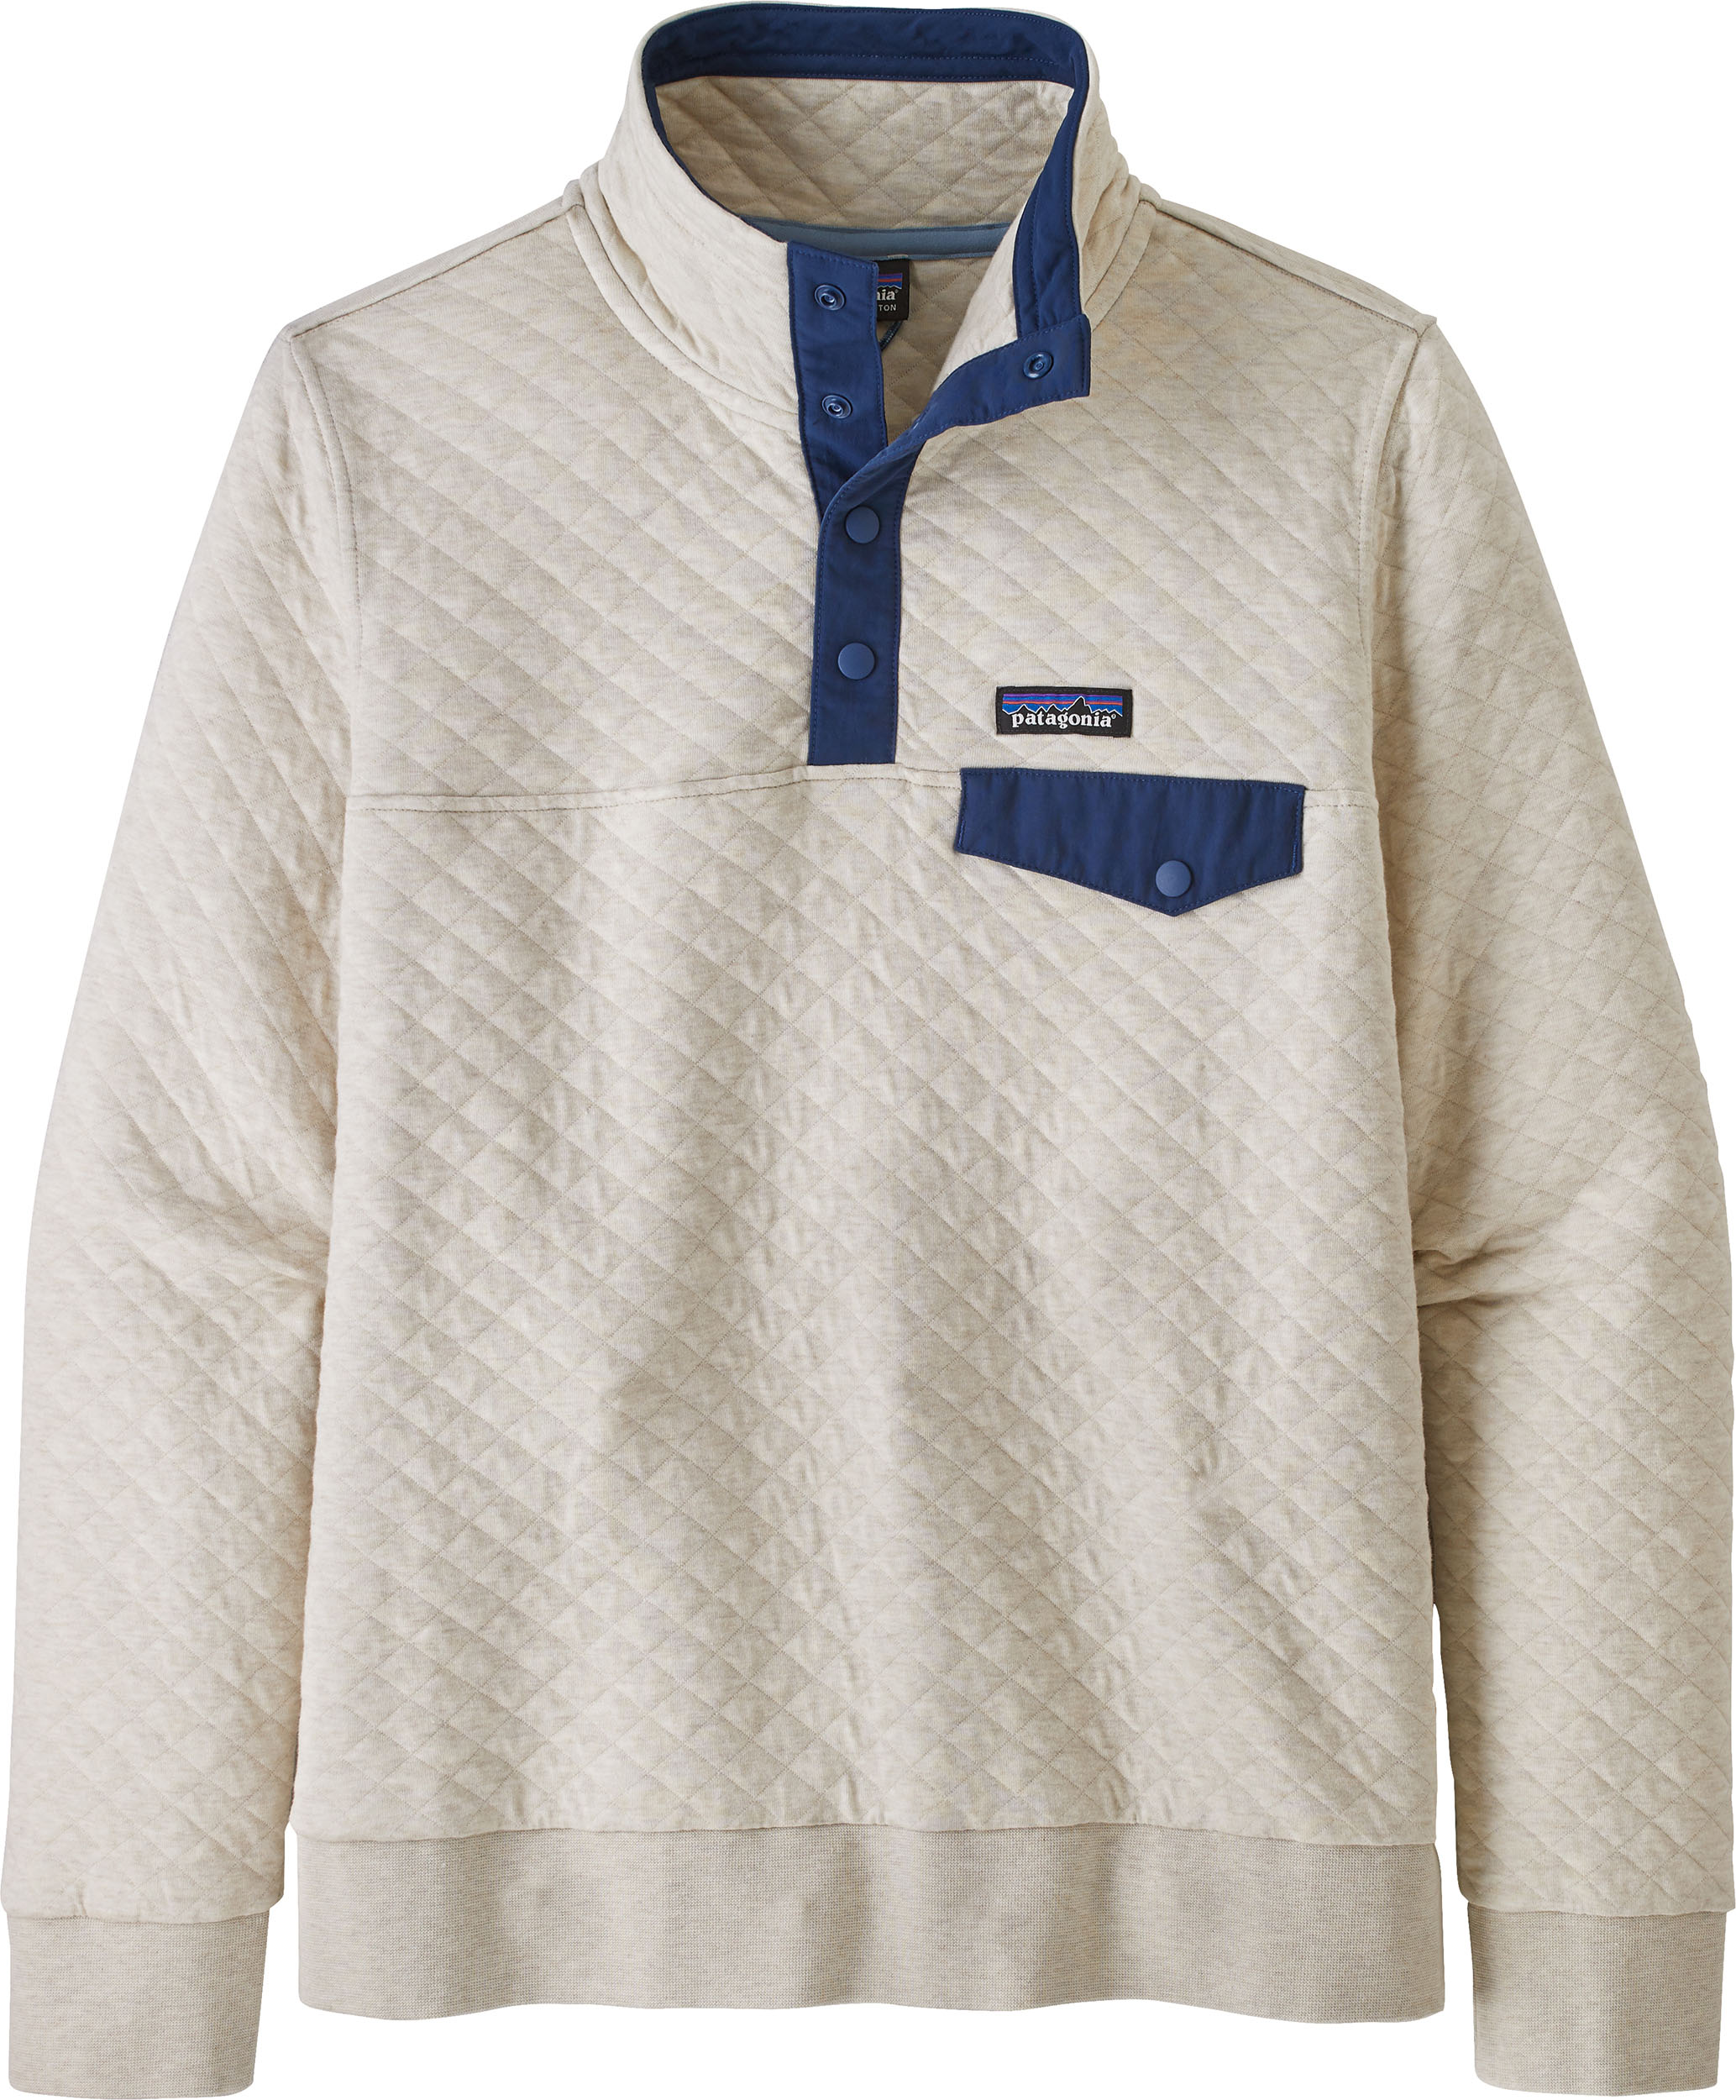 Patagonia all products | MEC